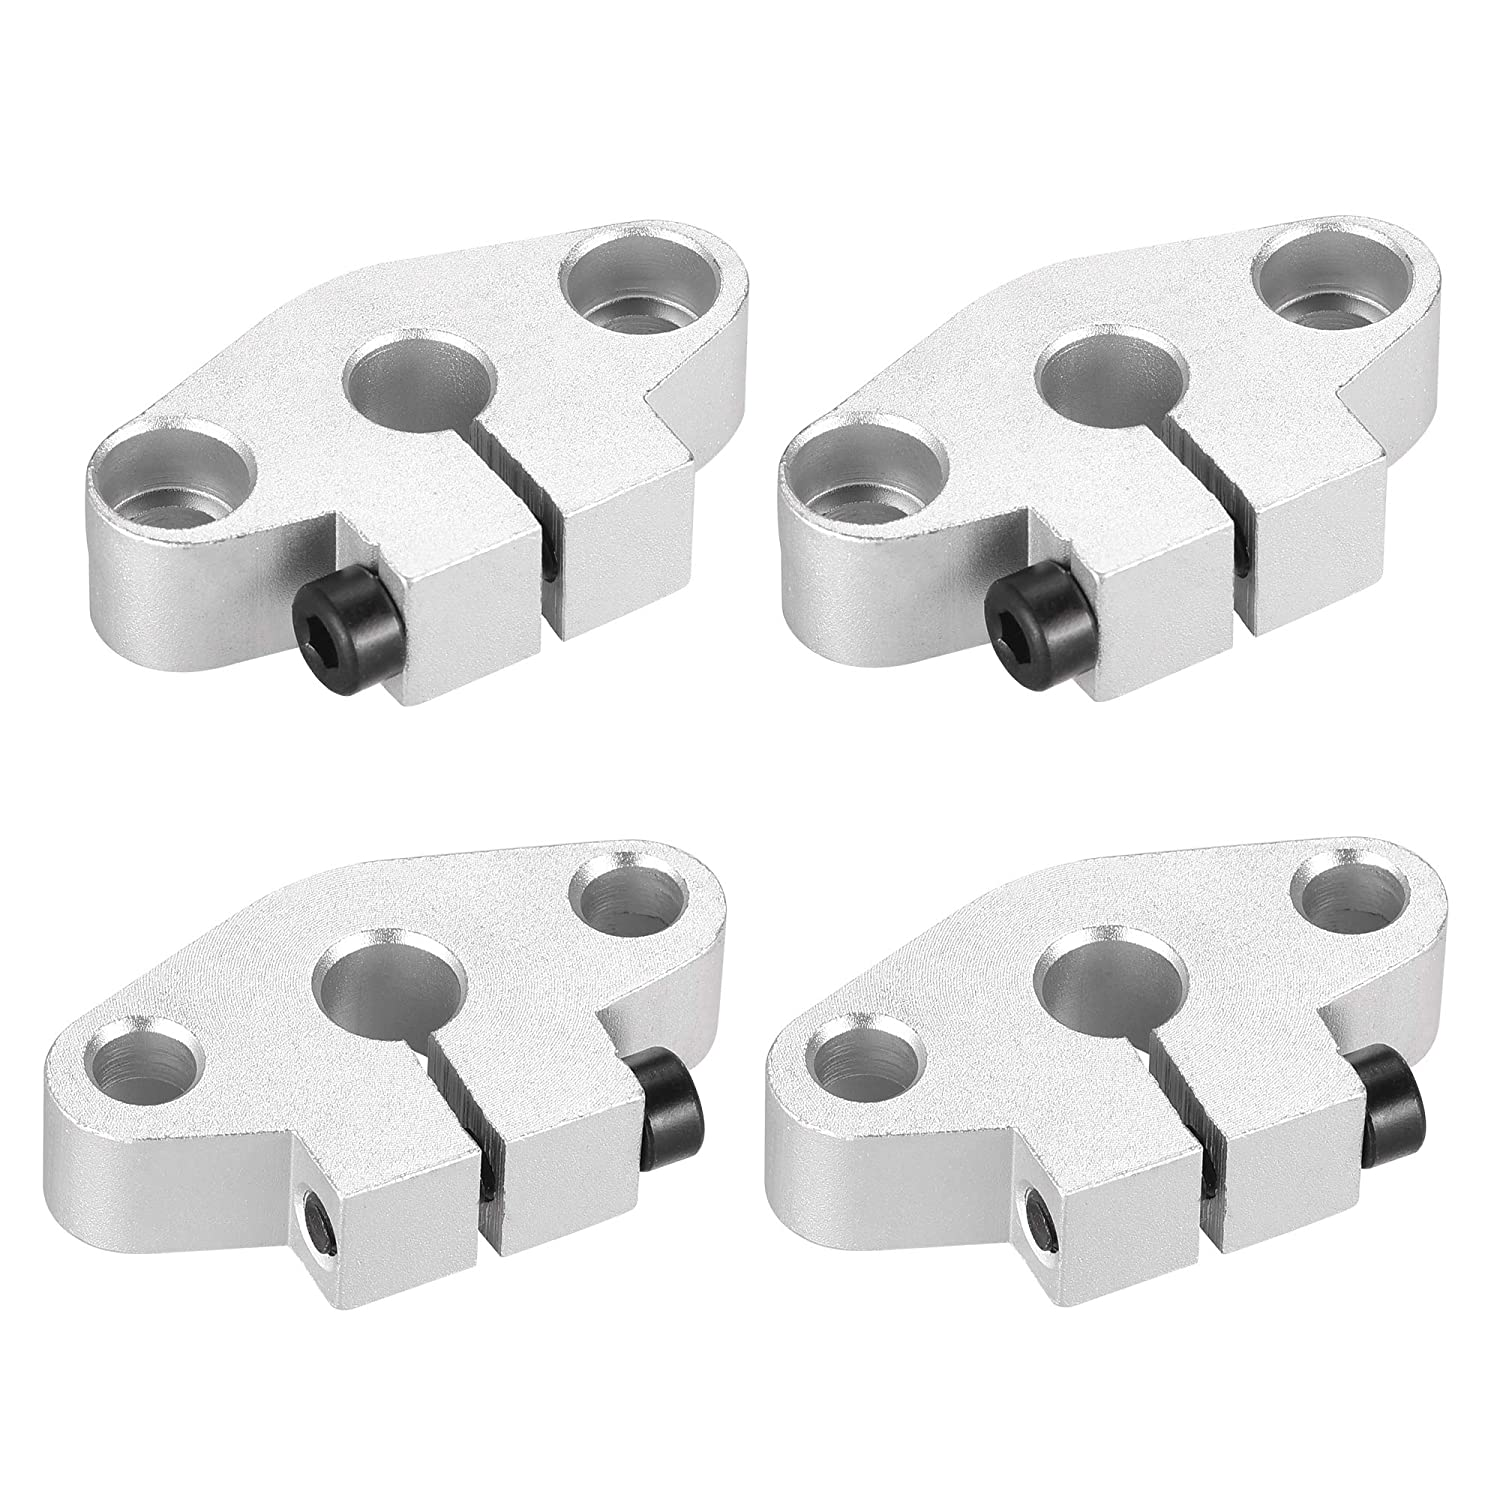 BELLA Bombing free shipping BAYS 4 pcs SHF8 Aluminum Fla Rod Rail Alloy Cheap super special price Support Linear